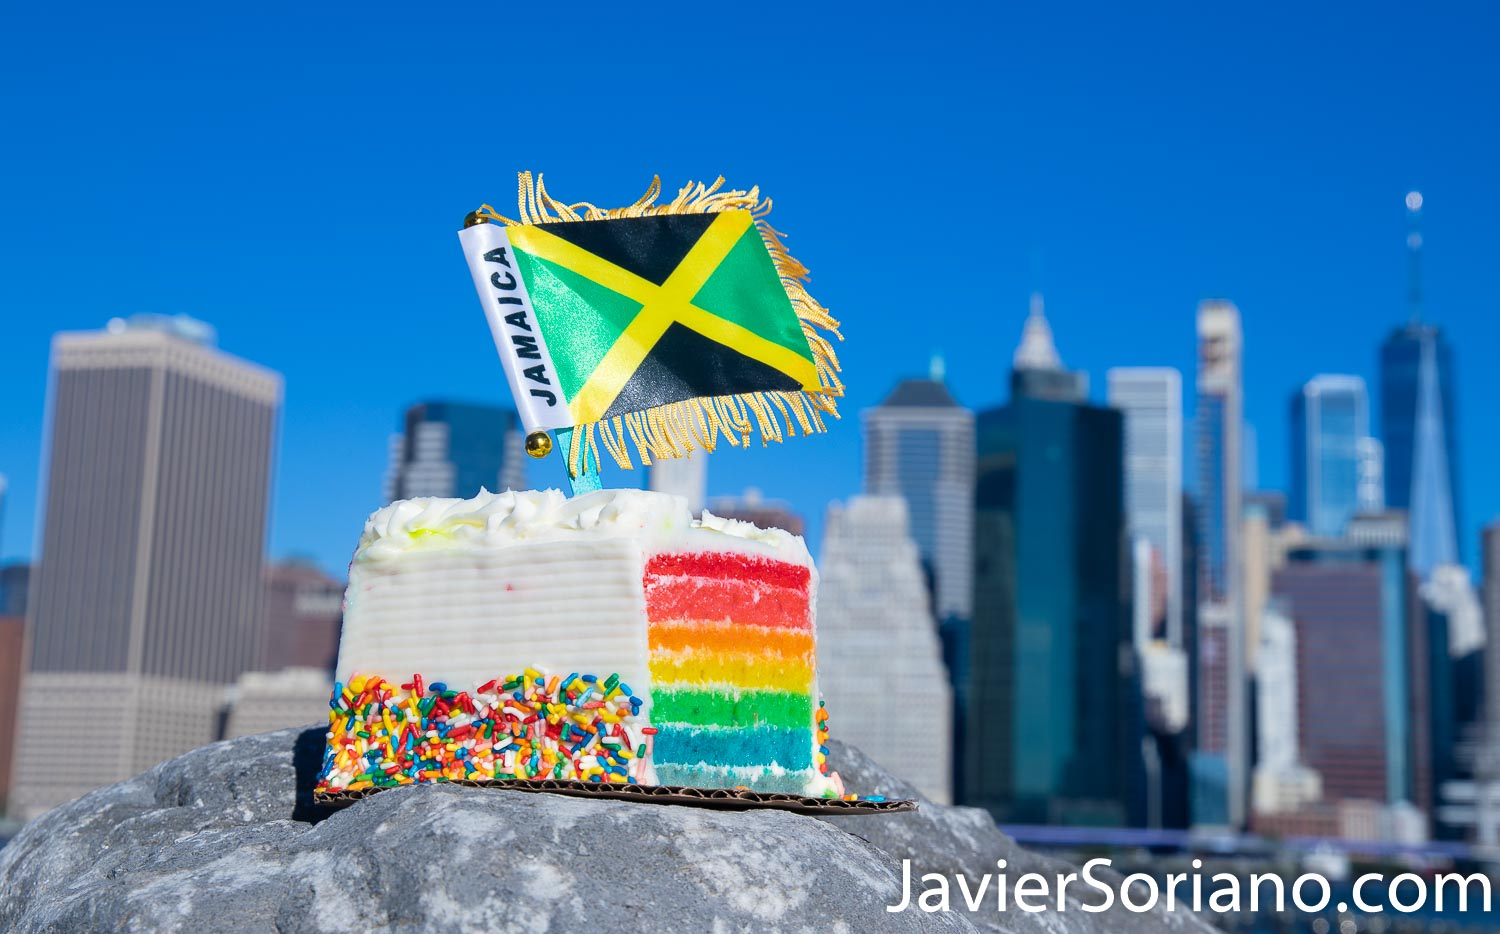 Rainbow cake and the flag of Jamaica. The background is the Lower Manhattan, also known as Downtown Manhattan or Downtown New York City. Photo by Javier Soriano/www.JavierSoriano.com